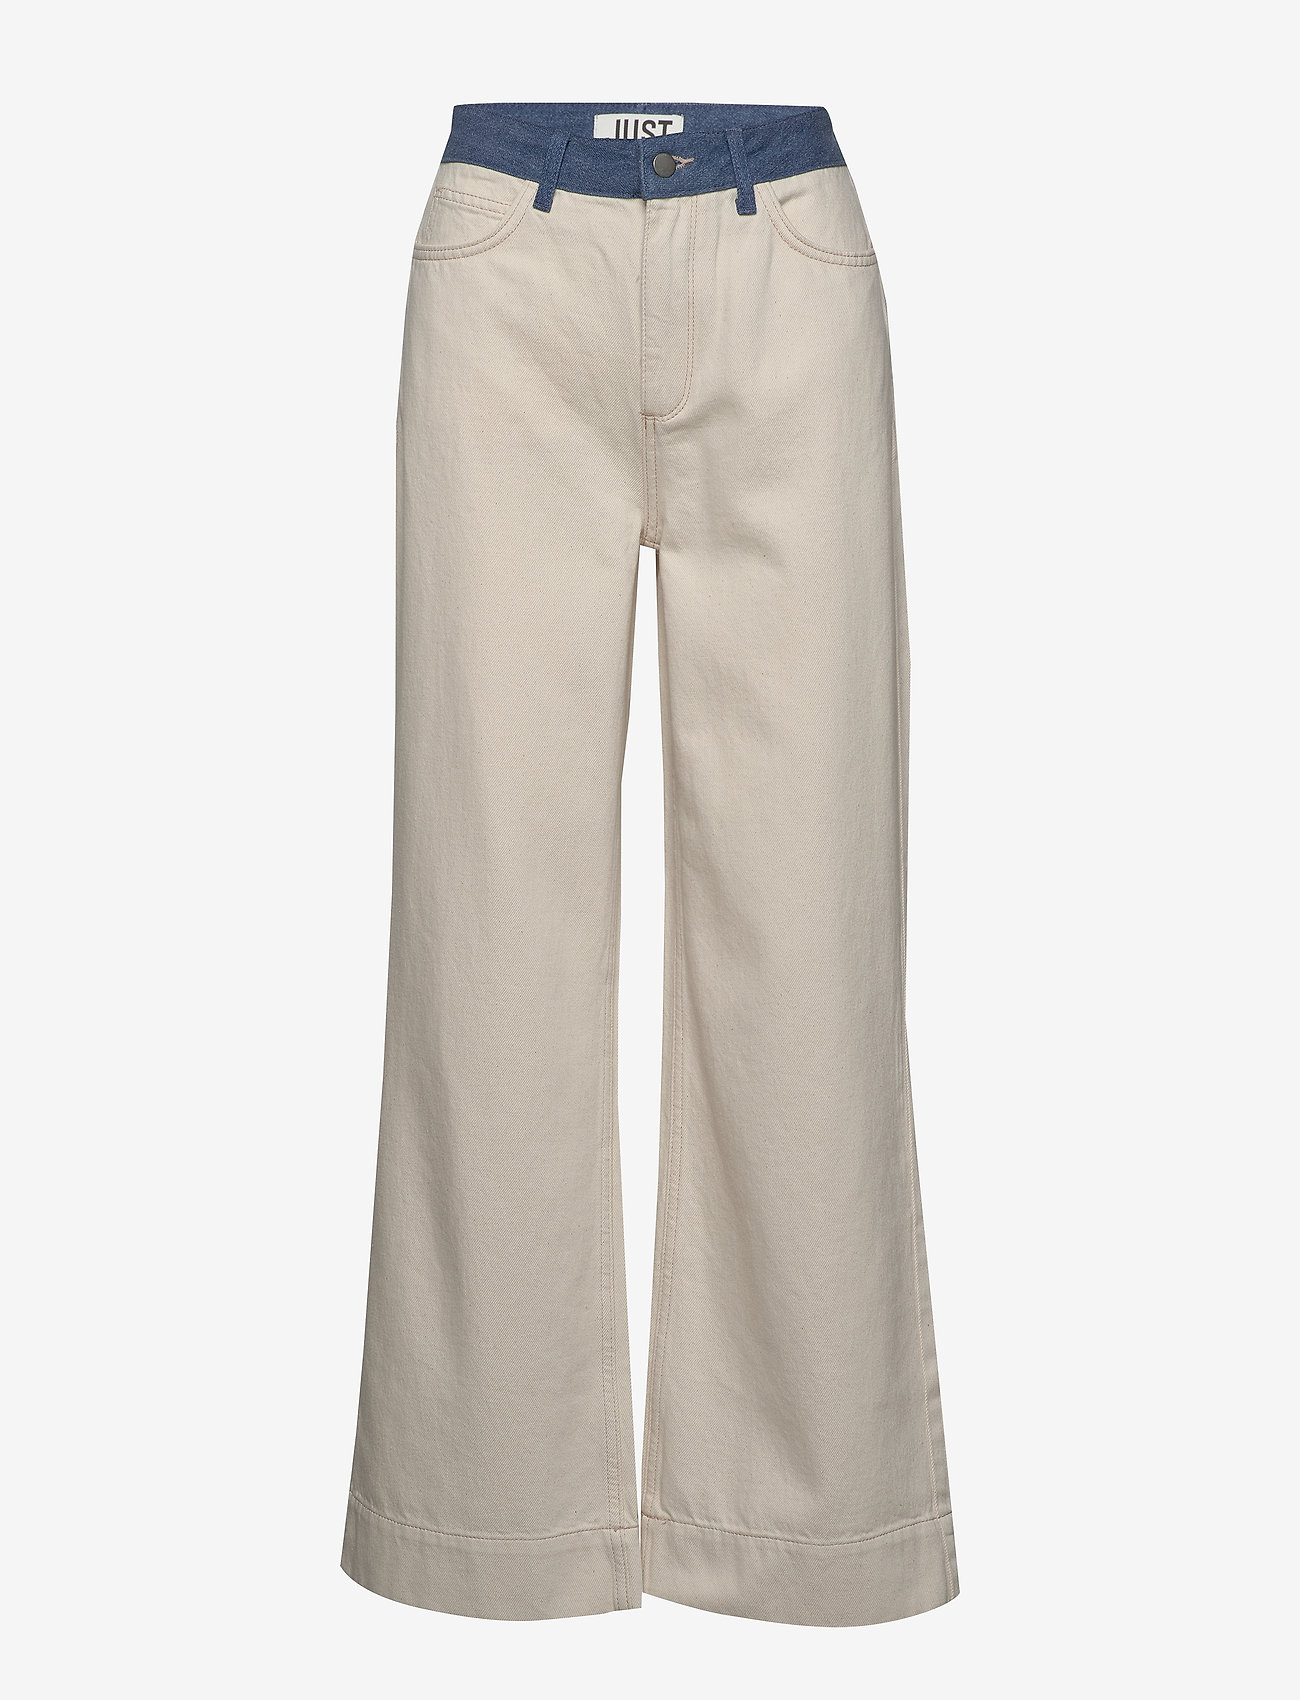 Just Female - Sika jeans - schlaghosen - off white - 0